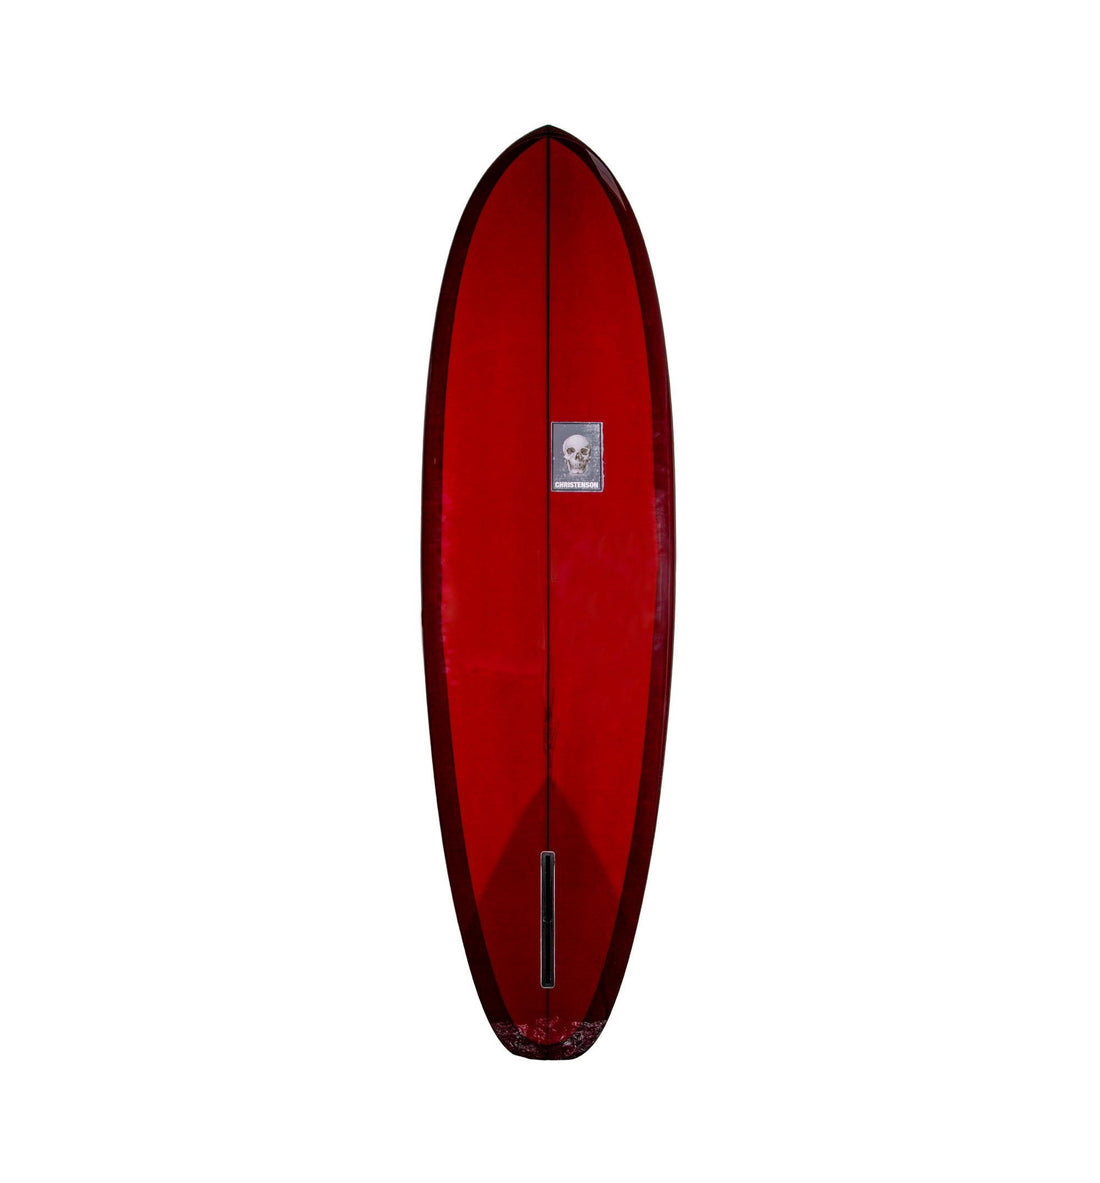 christenson surfboards flat tracker red tint 6 10 iron and resin